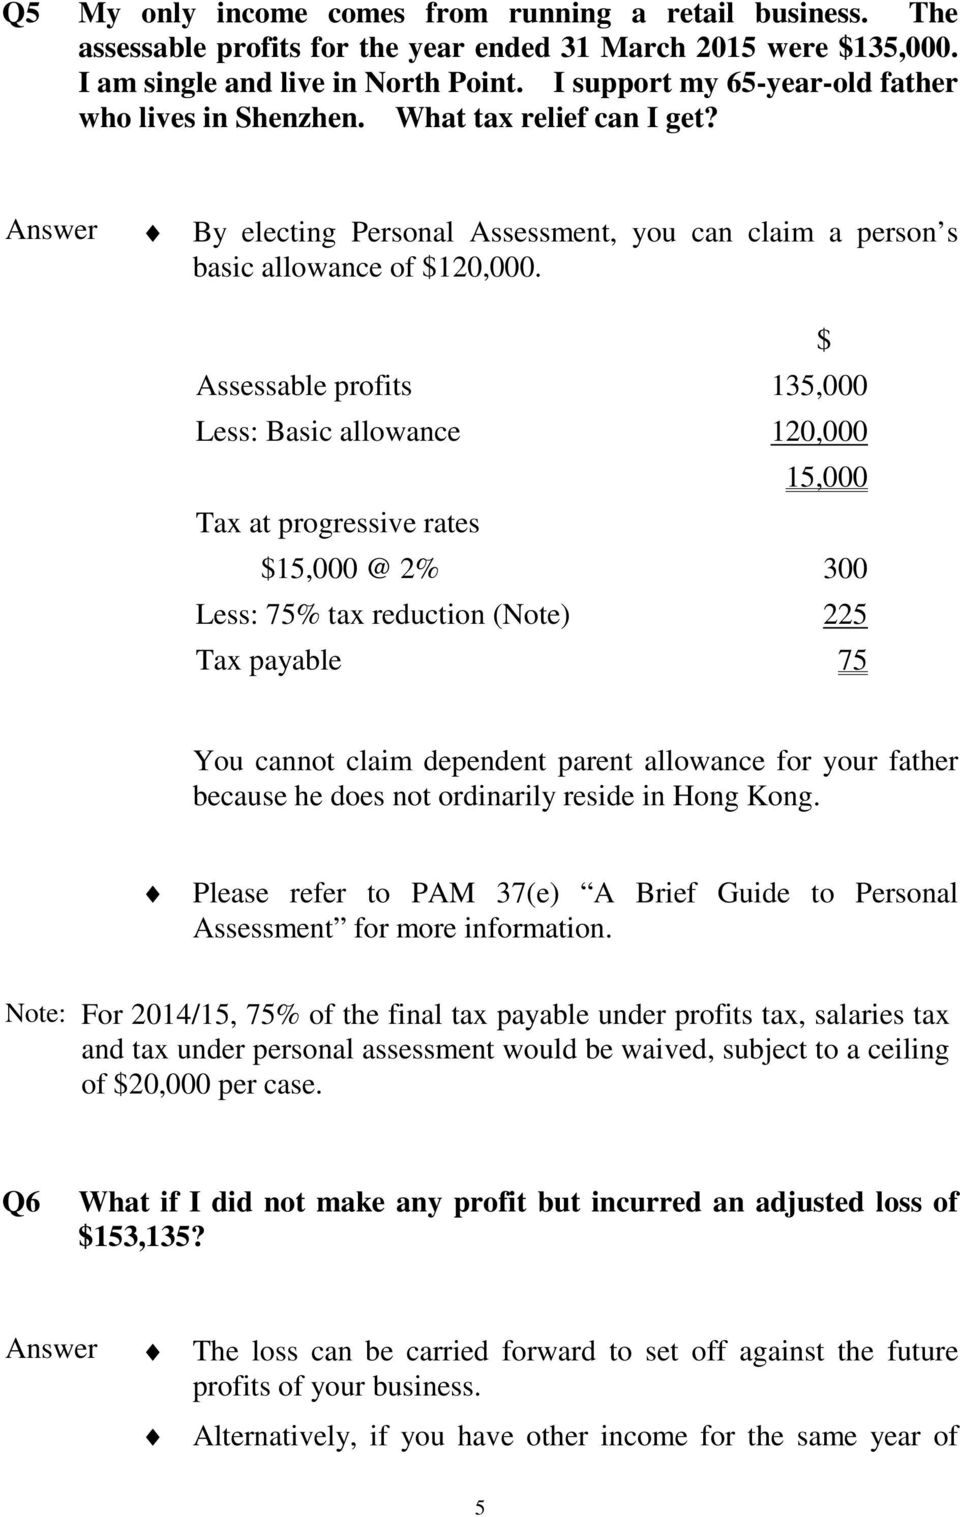 $ Assessable profits 135,000 Less: Basic allowance 120,000 15,000 Tax at progressive rates $15,000 @ 2% 300 Less: 75% tax reduction (Note) 225 Tax payable 75 You cannot claim dependent parent